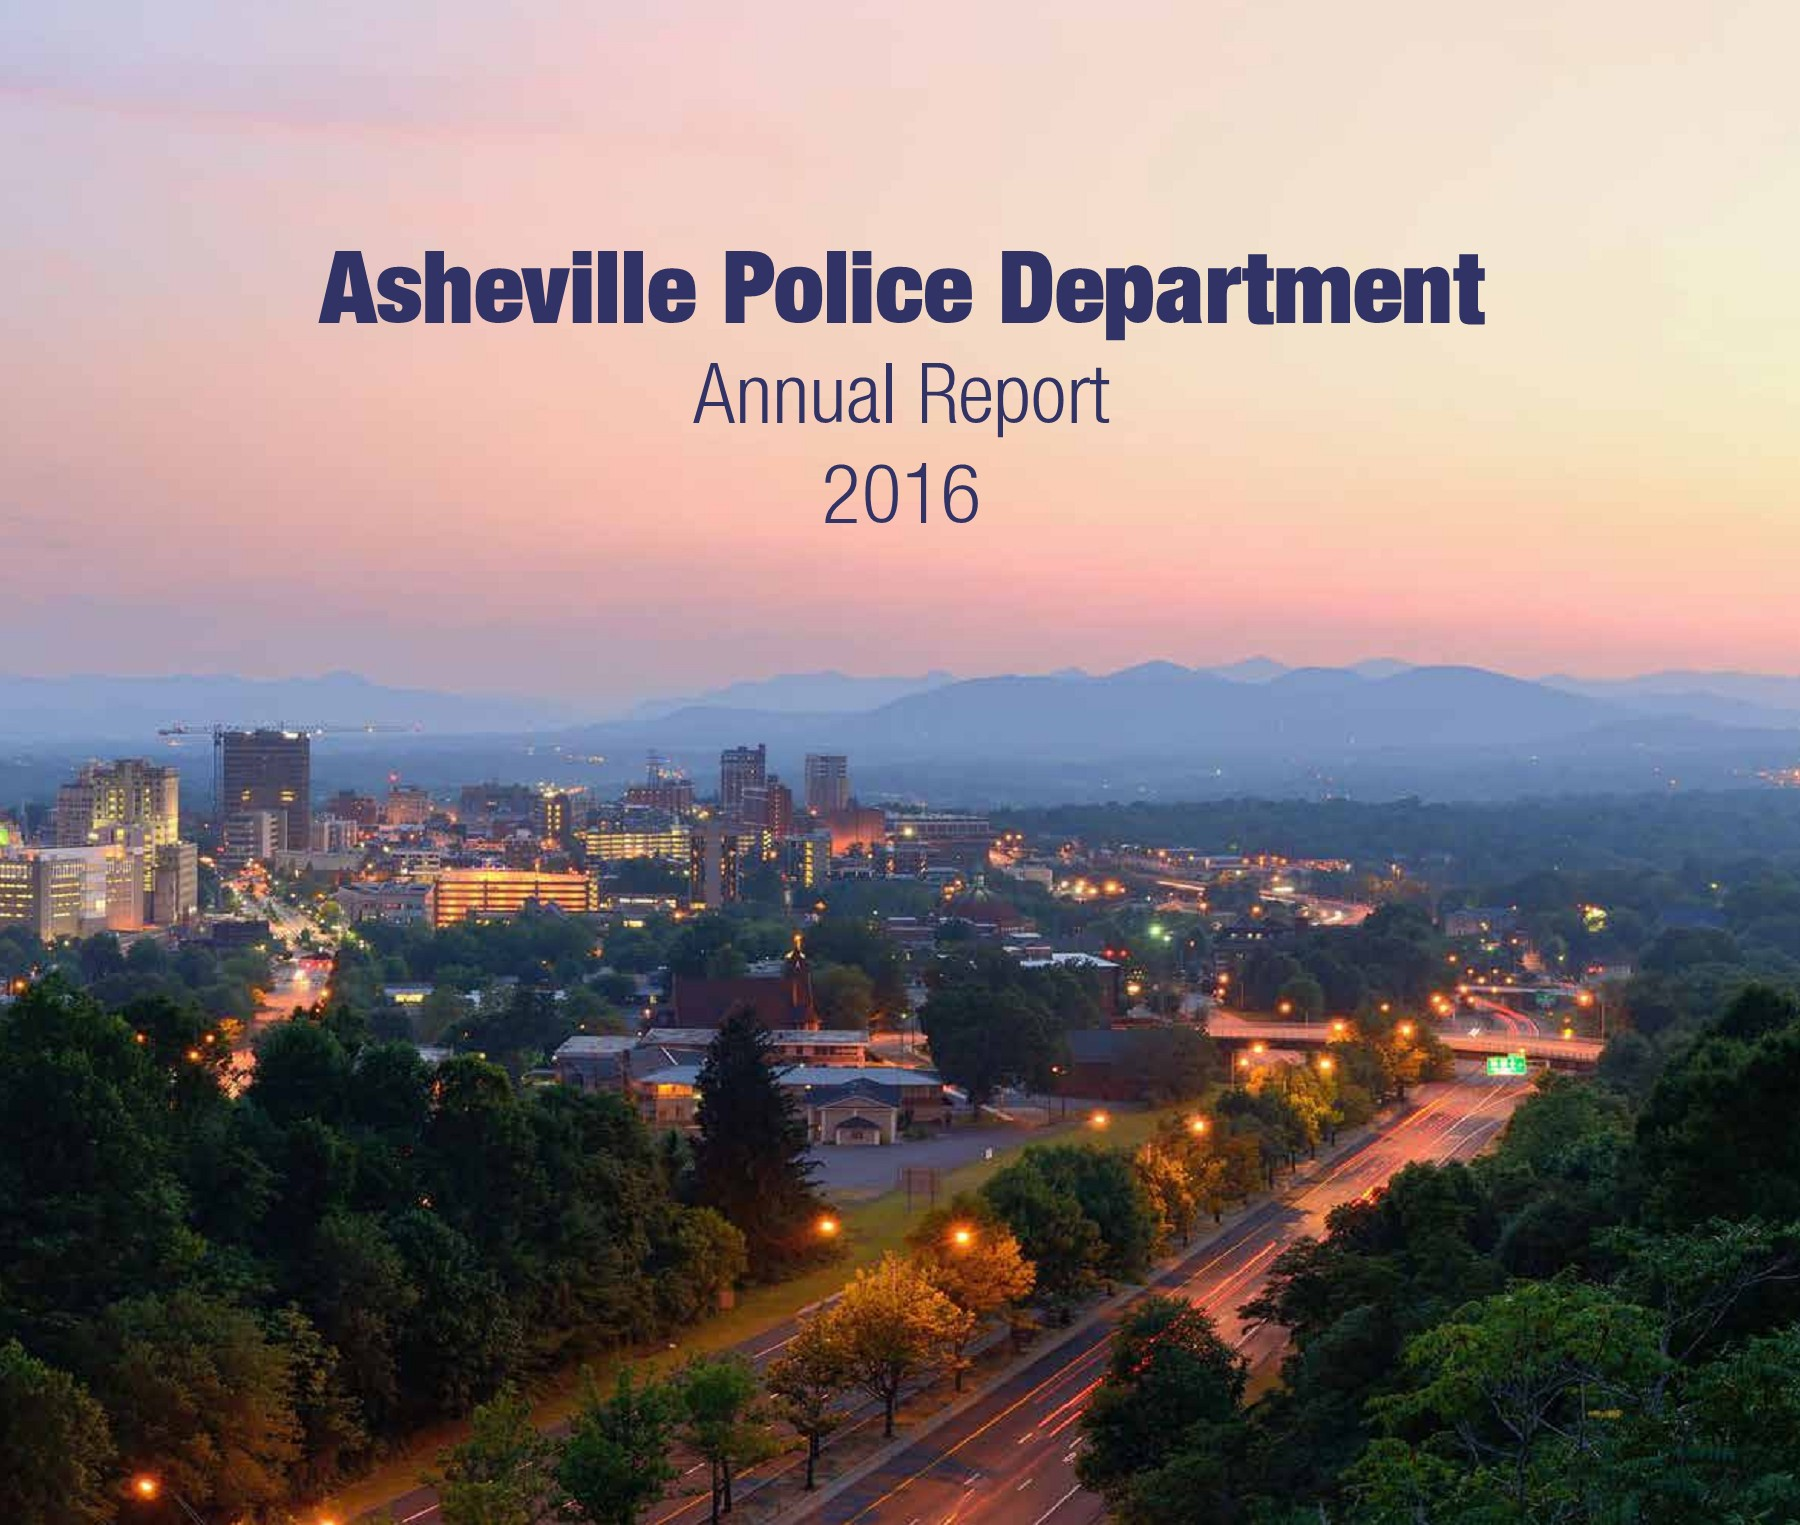 Asheville Police Department 2016 Annual Report Pages 1 - 28 - Text